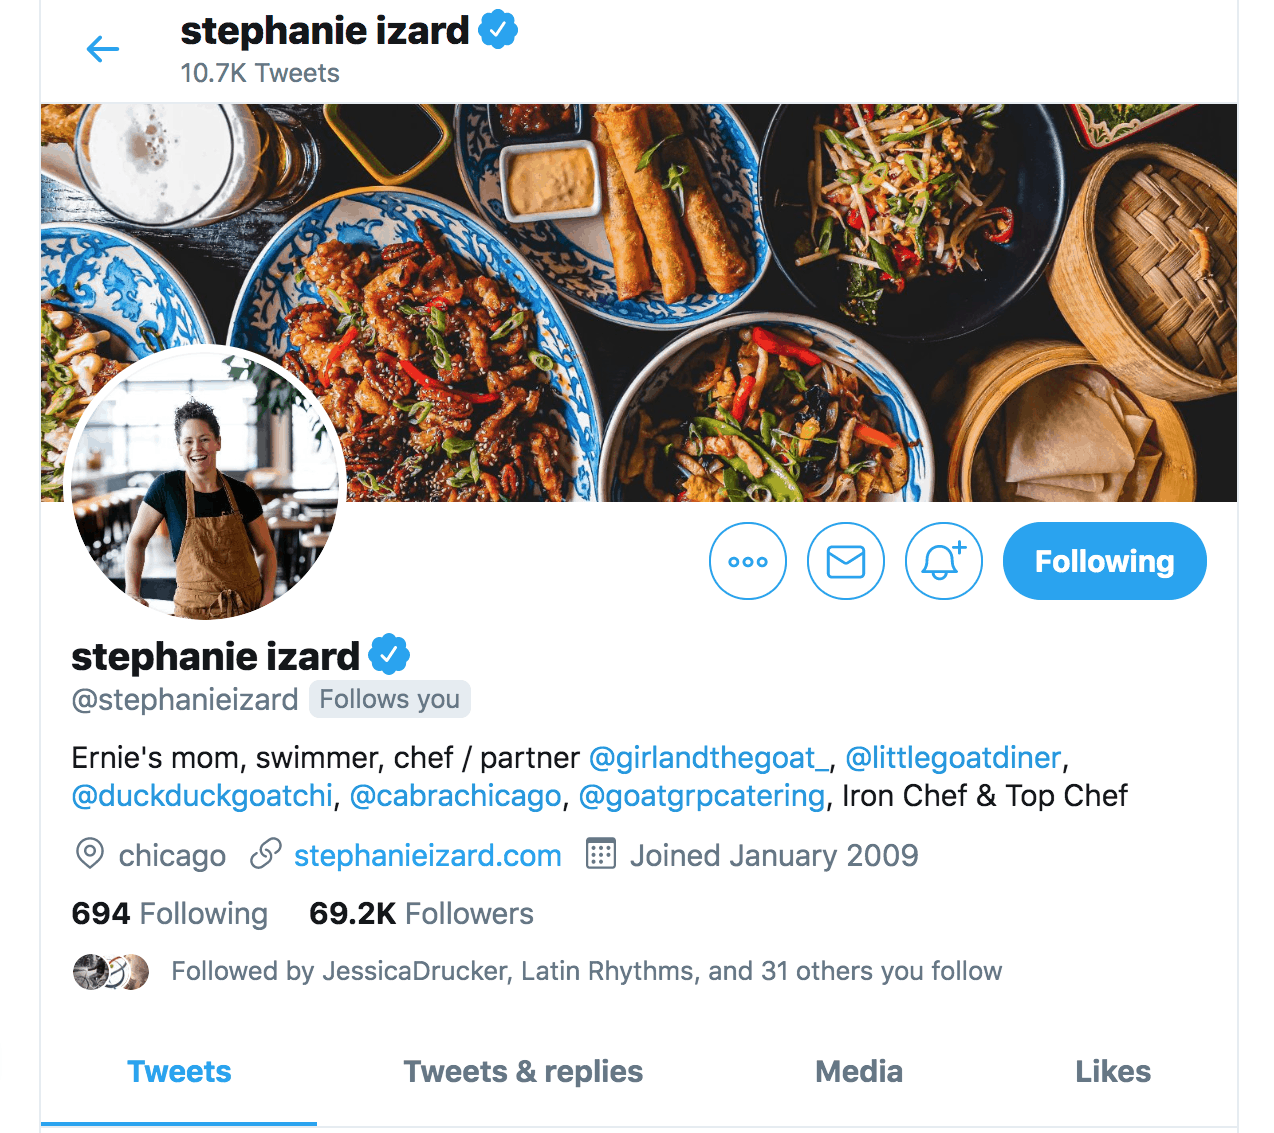 Stephanie Izard follows me on Twitter.